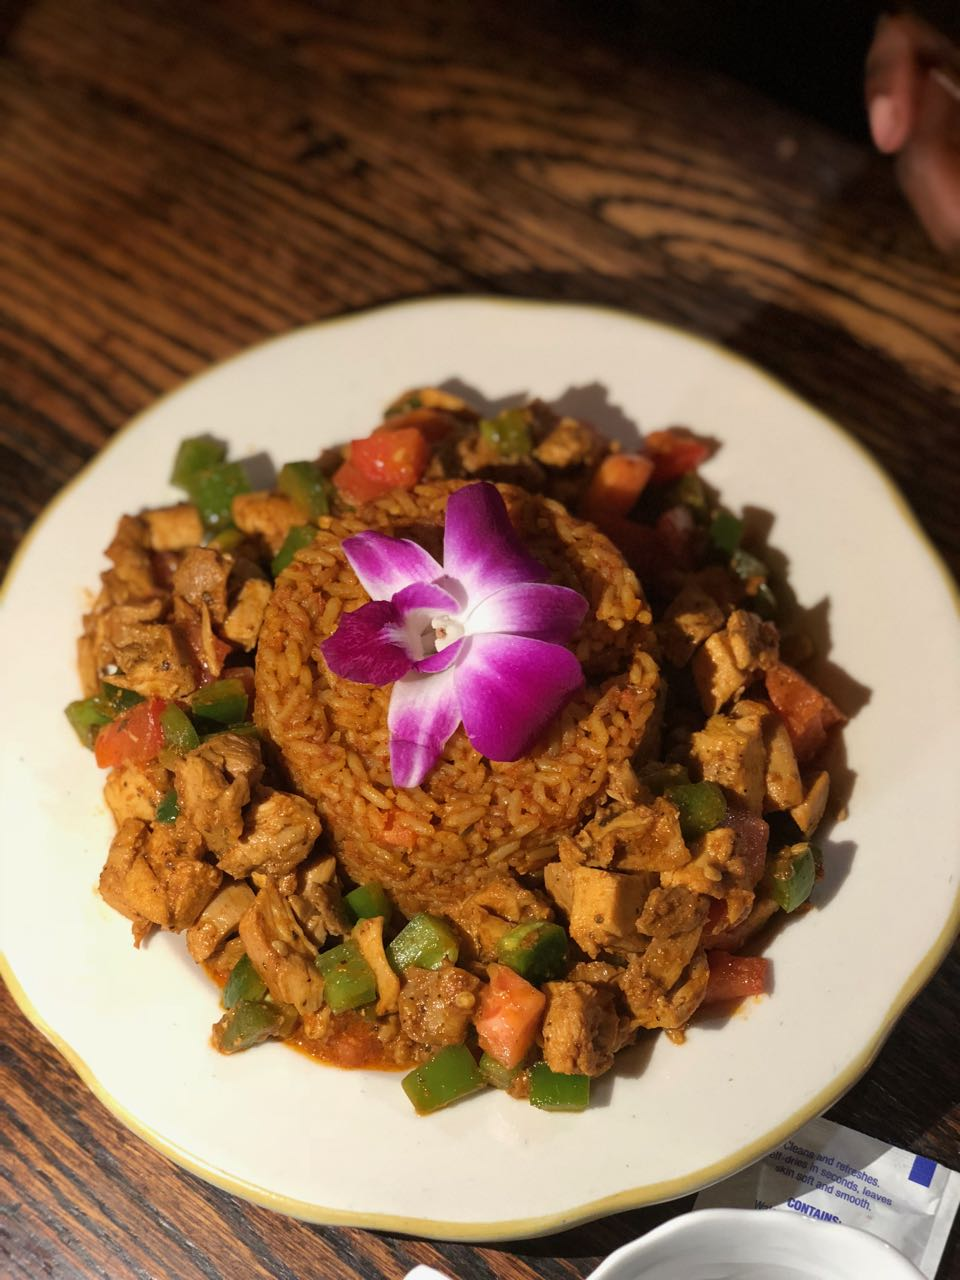 This Sugar Hill Hotspot Nourishes Our Mind, Body And Soul